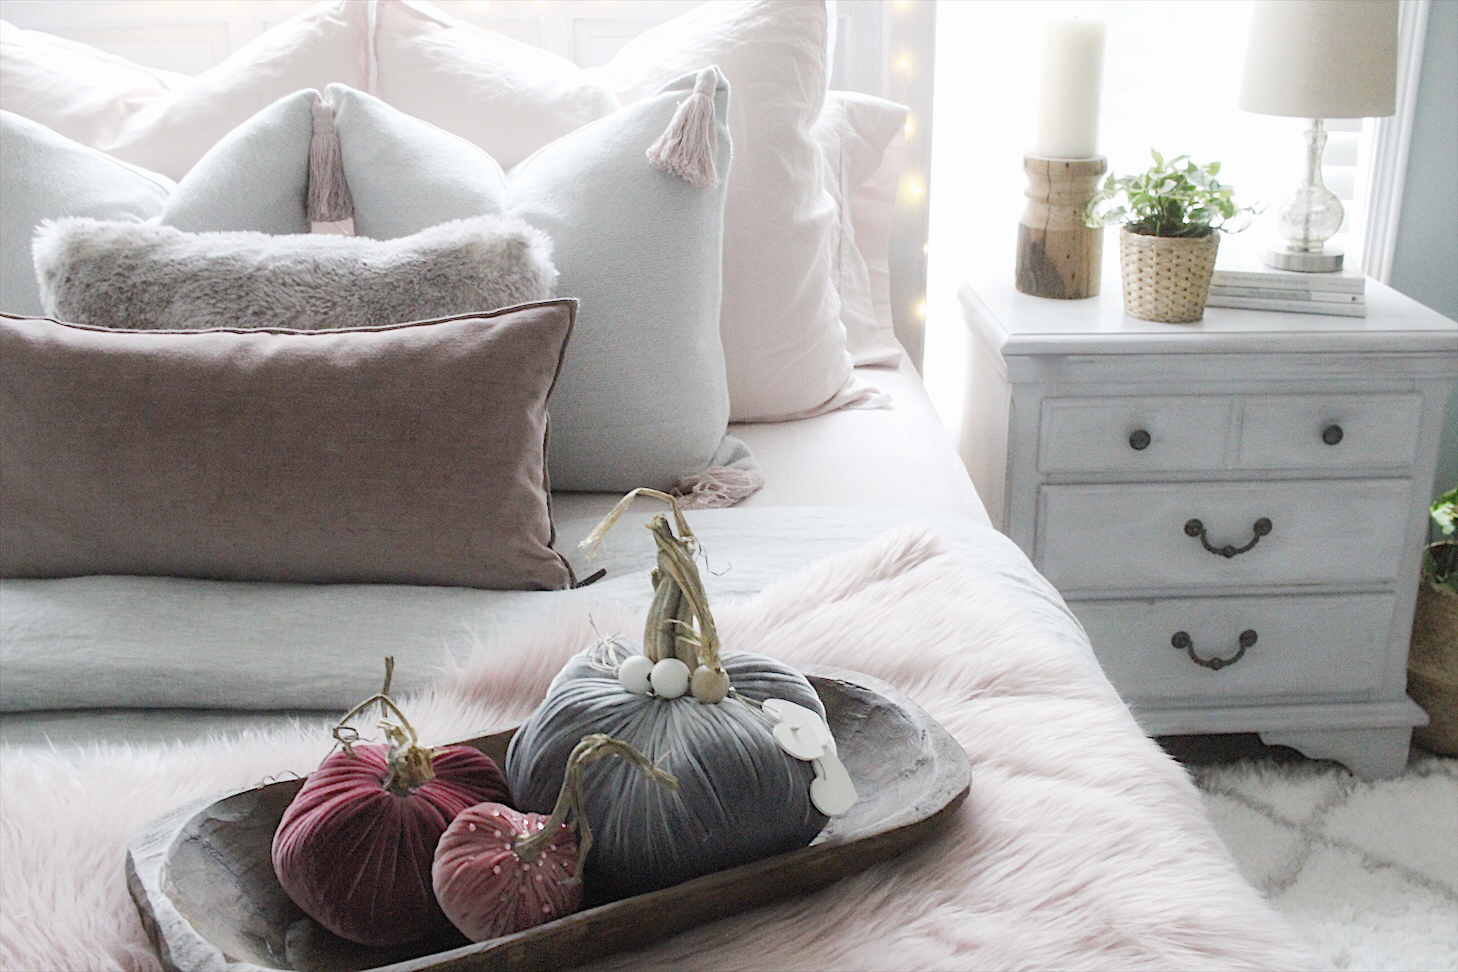 rich jewel tones - early fall bedroom decor